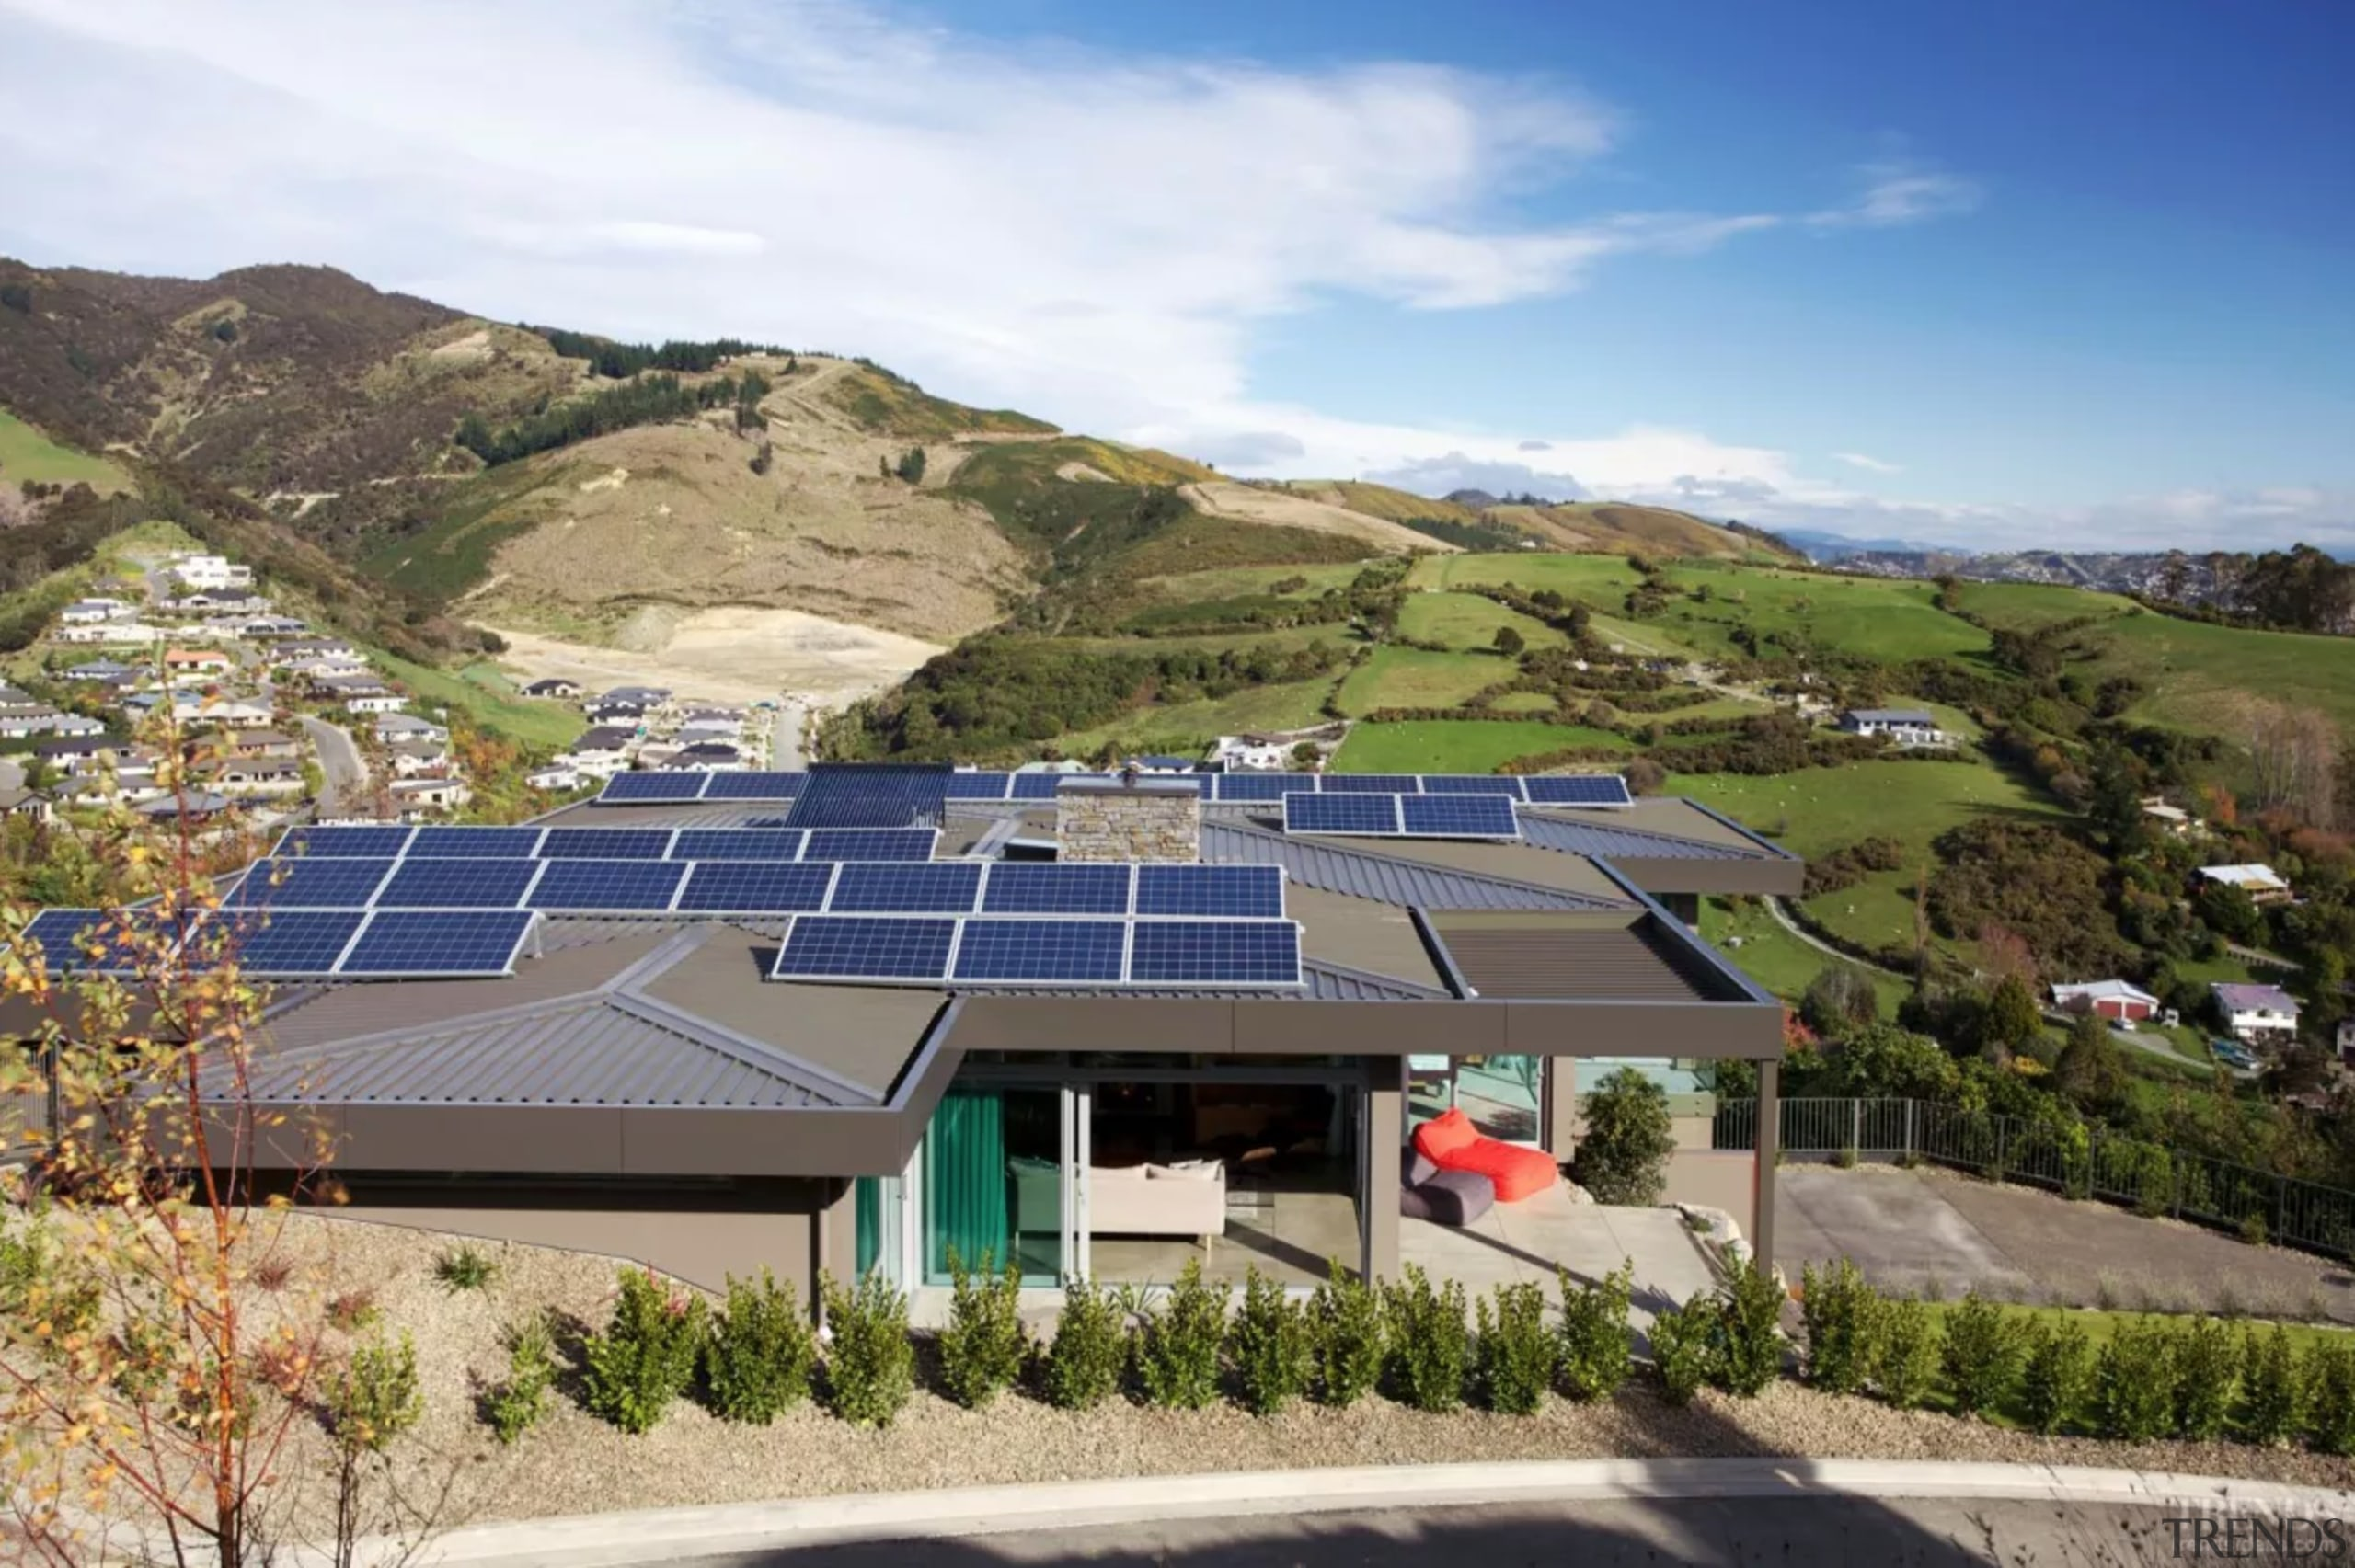 An array of solar panels powers this green architecture, building, estate, highland, hill station, home, house, mountain, mountain range, mountainous landforms, property, real estate, residential area, roof, sky, slope, solar energy, solar panel, solar power, sunlight, technology, brown